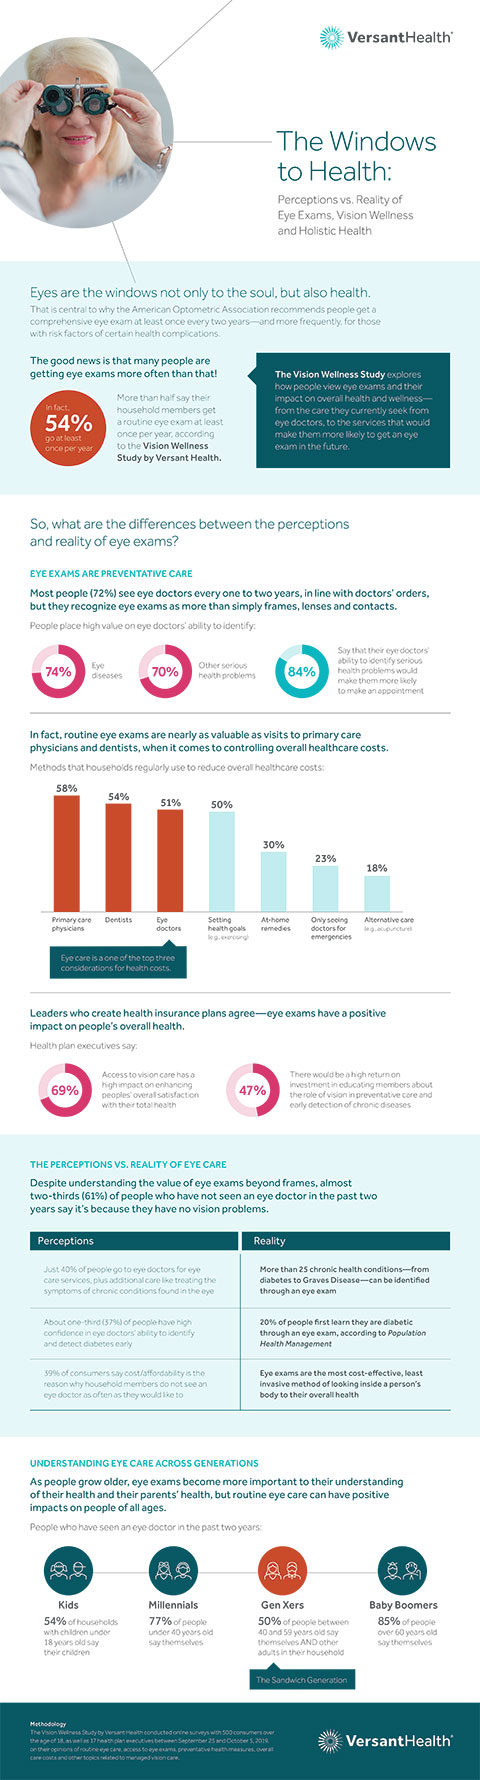 What are the perceptions vs. reality of eye exams, vision wellness and holistic health? View the infographic on Versant Health's Vision Wellness Study to find out. (Graphic: Business Wire)